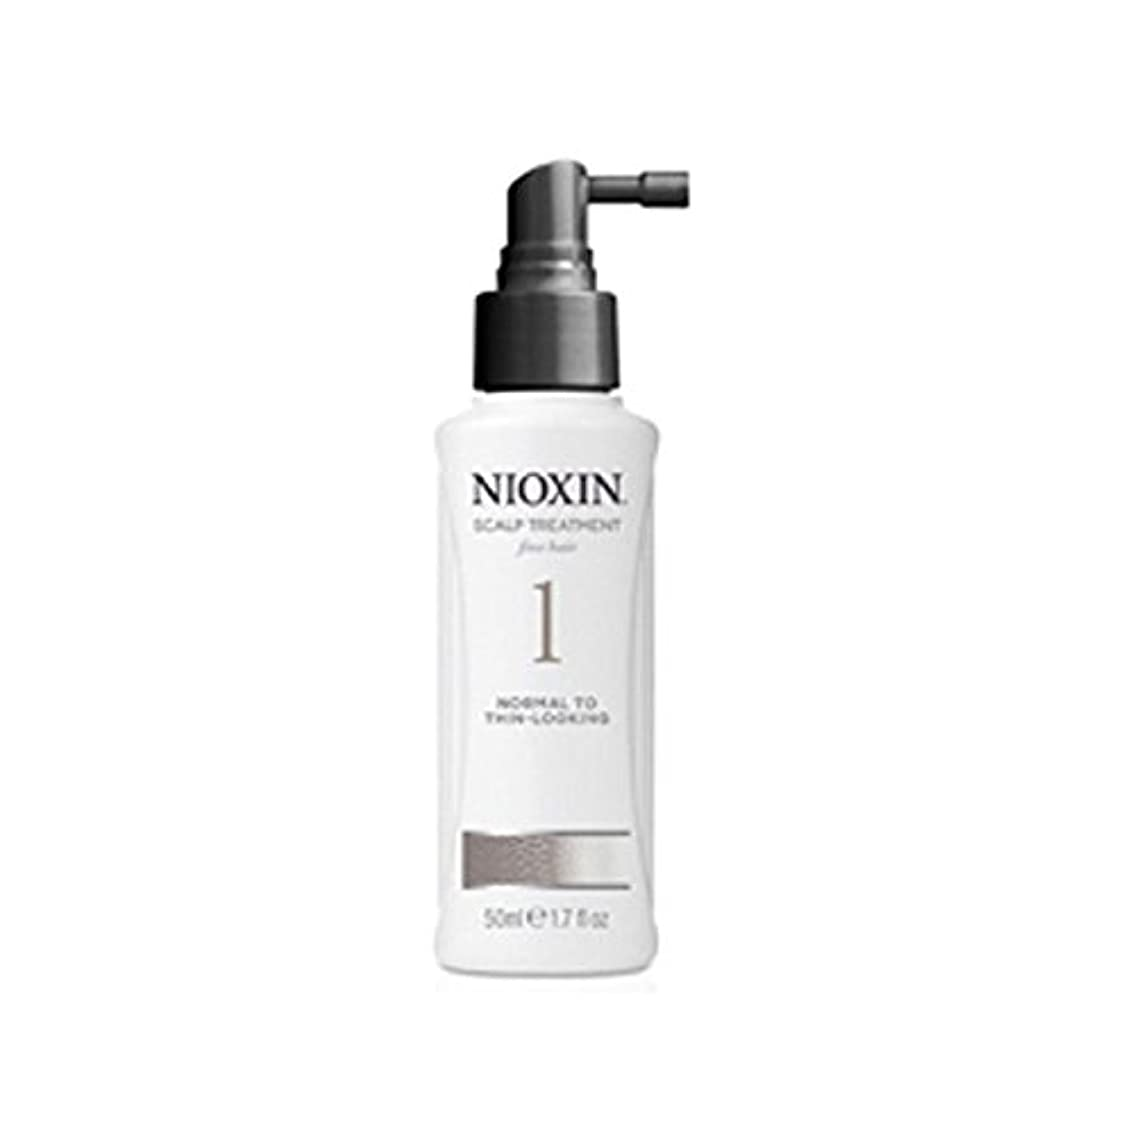 Nioxin System 1 Scalp Treatment For Normal To Fine Natural Hair (100ml) - 細かい自然な髪への通常のためニオキシンシステム1スカルプトリートメント(...